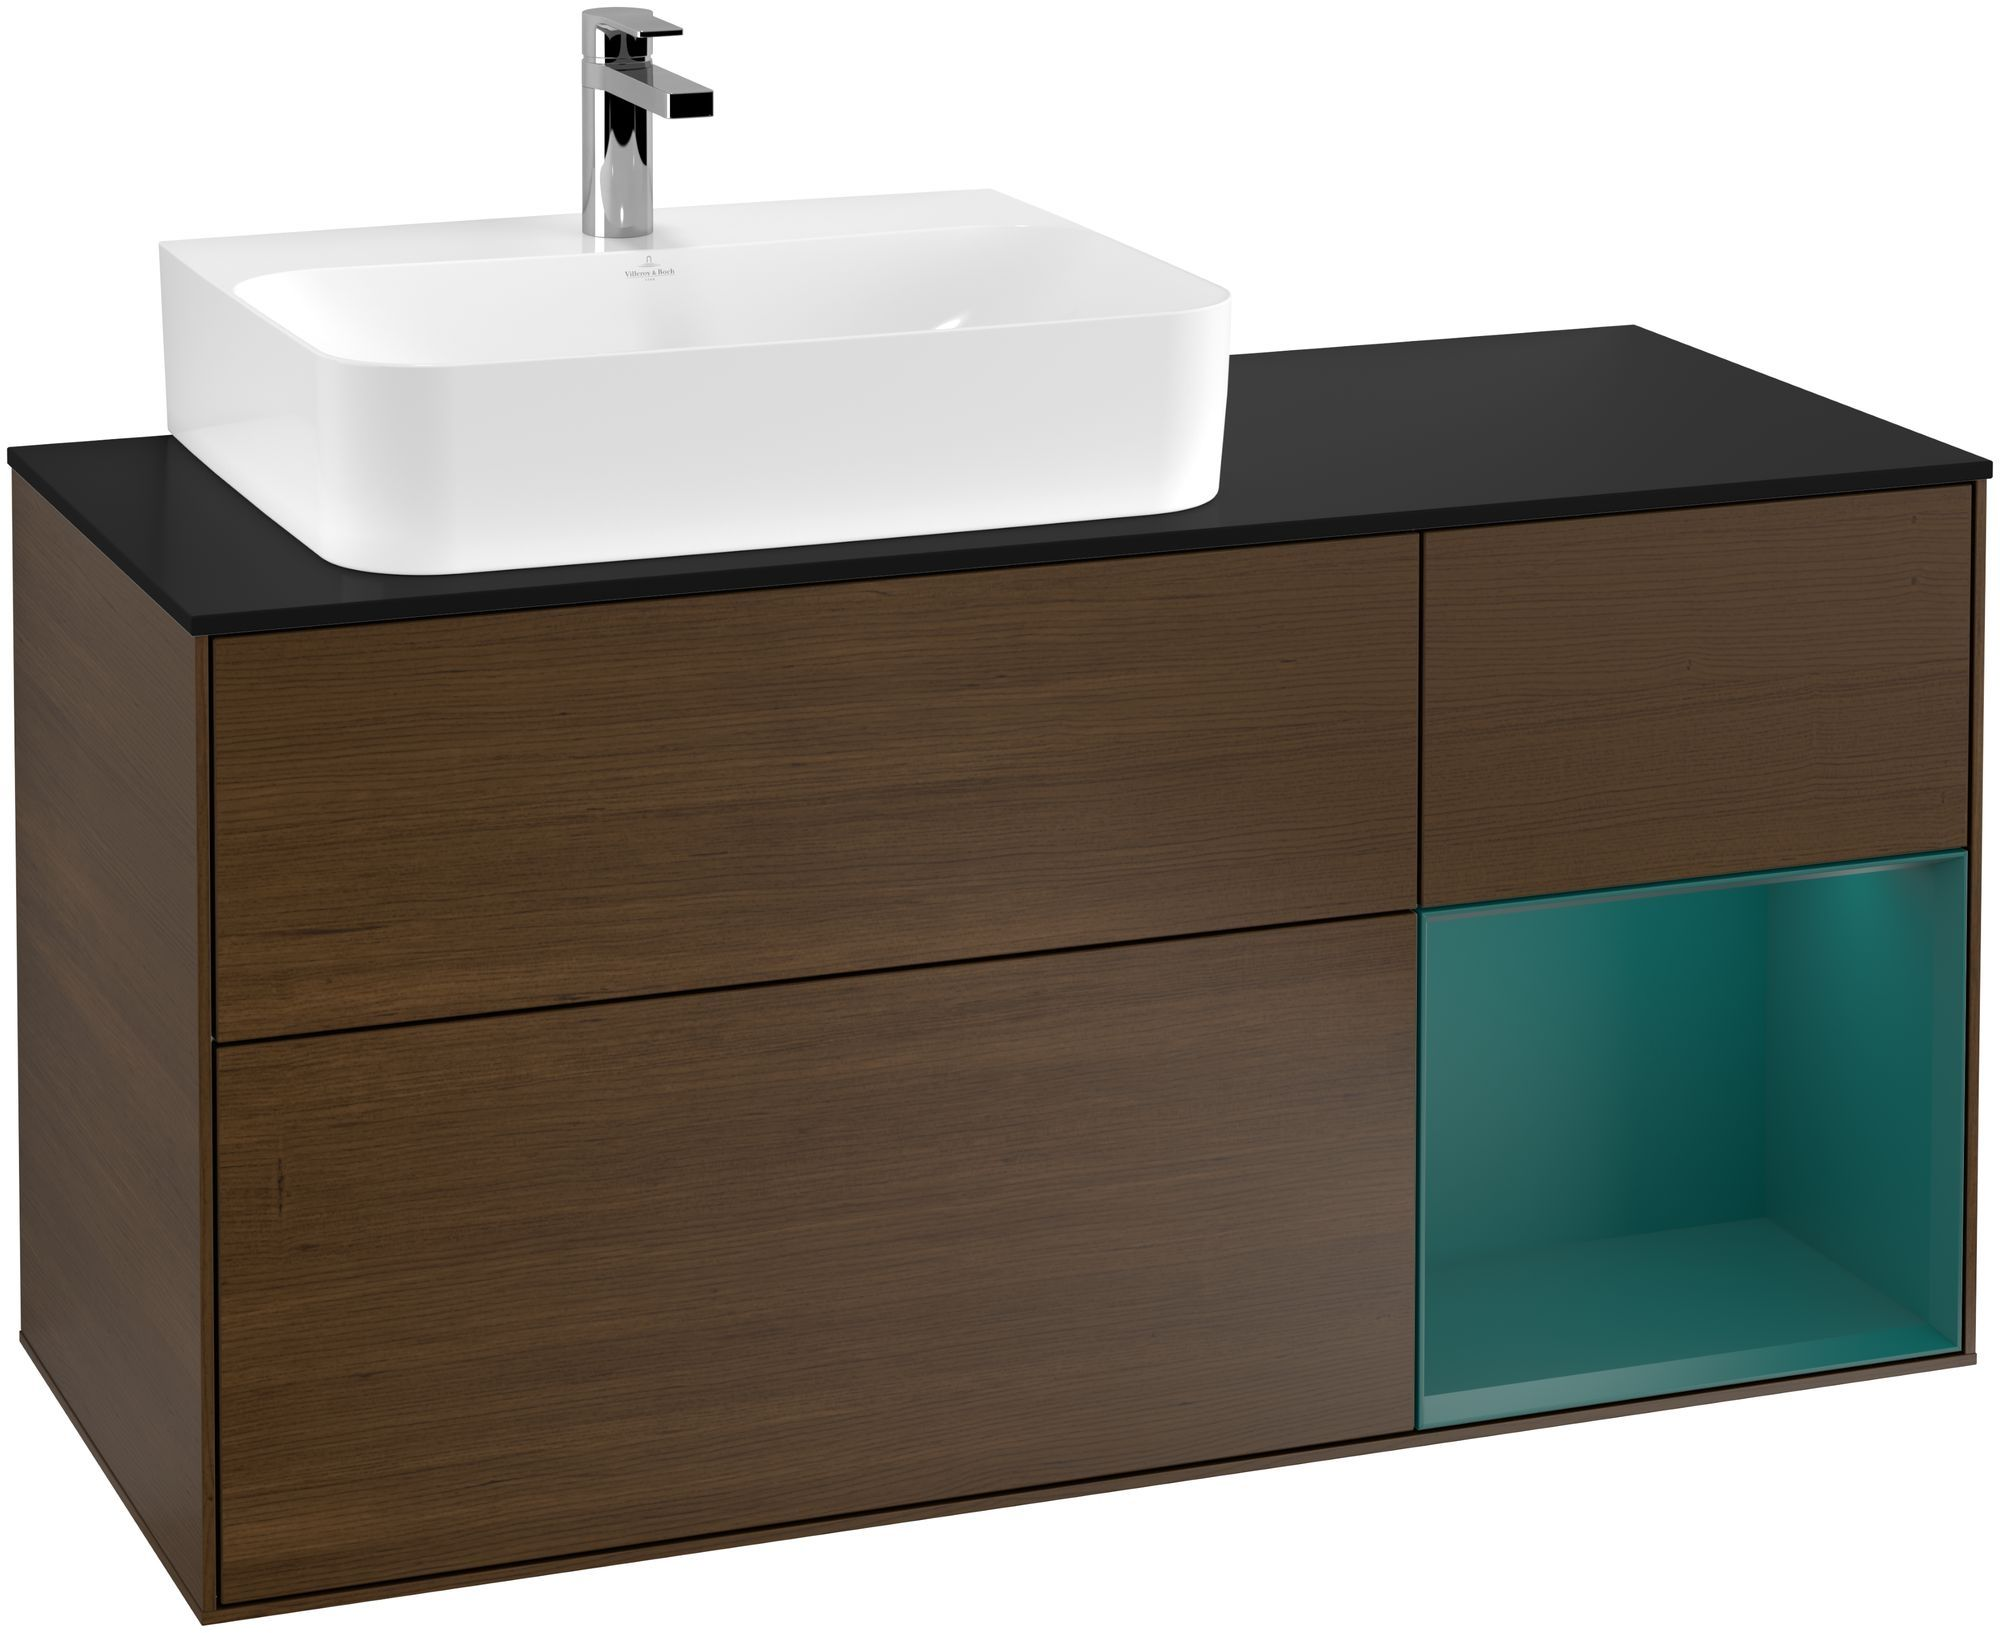 Villeroy & Boch Finion G15 Waschtischunterschrank mit Regalelement 3 Auszüge Waschtisch links LED-Beleuchtung B:120xH:60,3xT:50,1cm Front, Korpus: Walnut Veneer, Regal: Cedar, Glasplatte: Black Matt G152GSGN